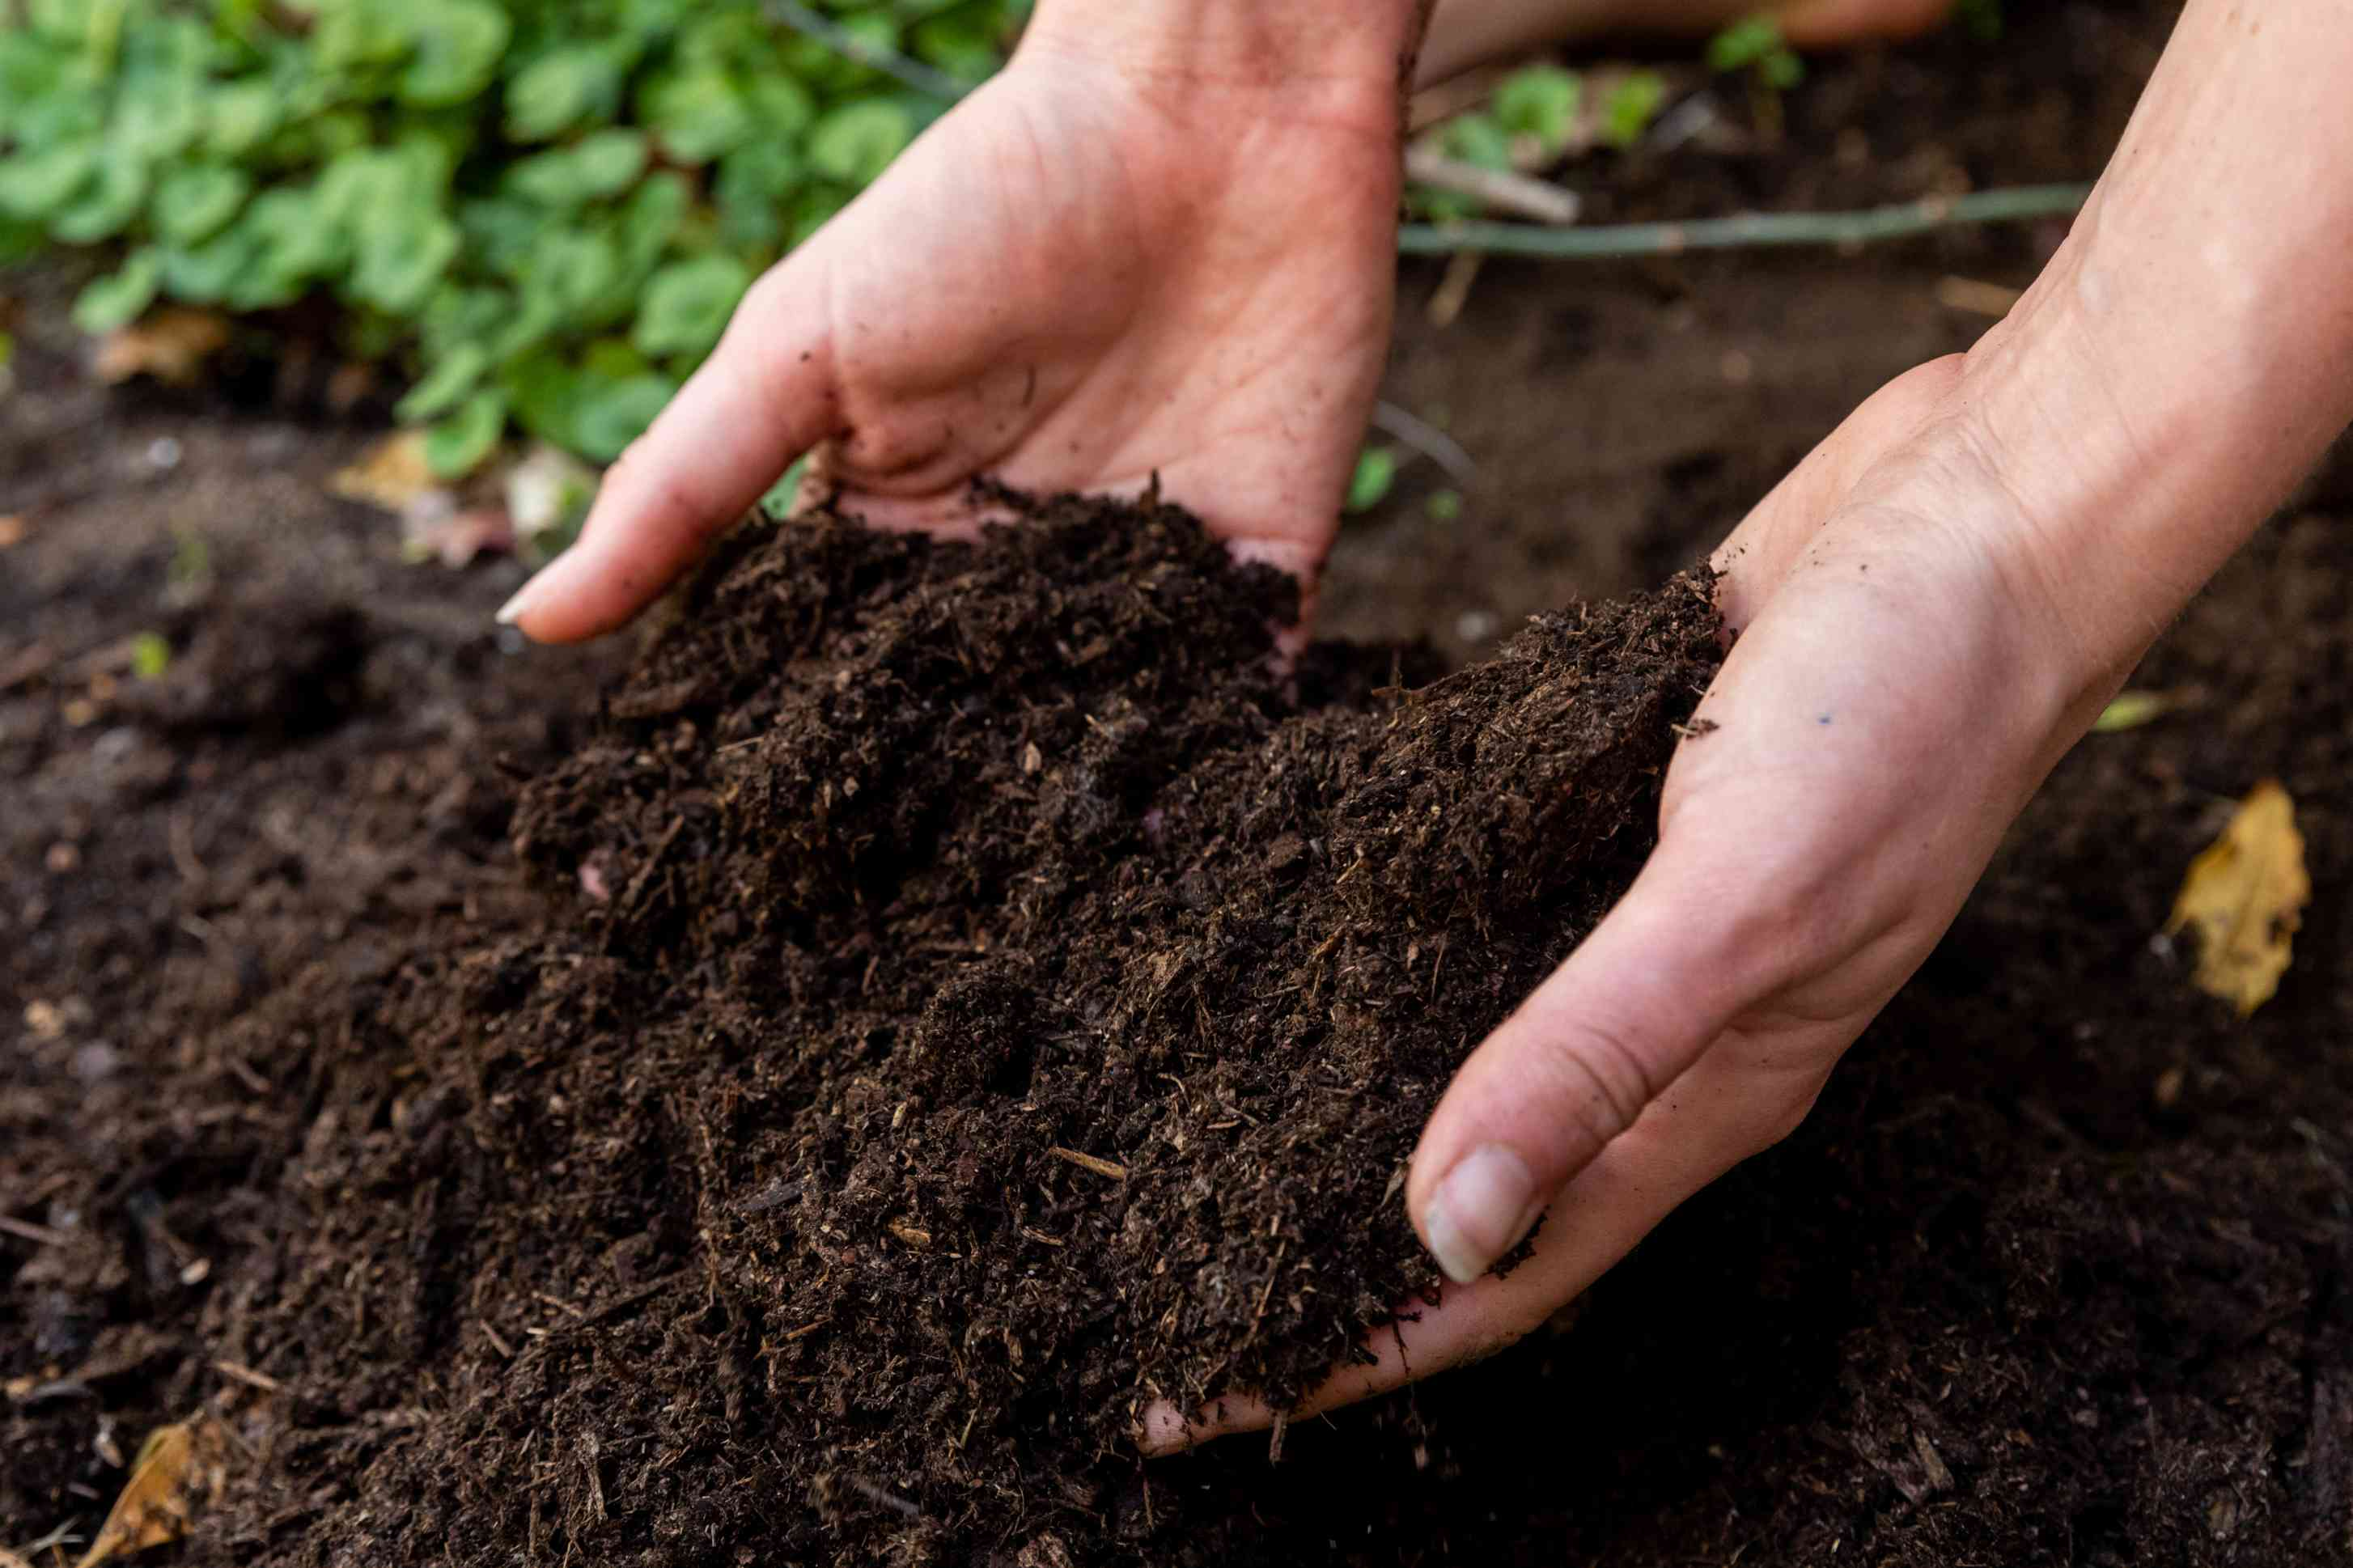 Soil picked up from ground by hand for worm soil test